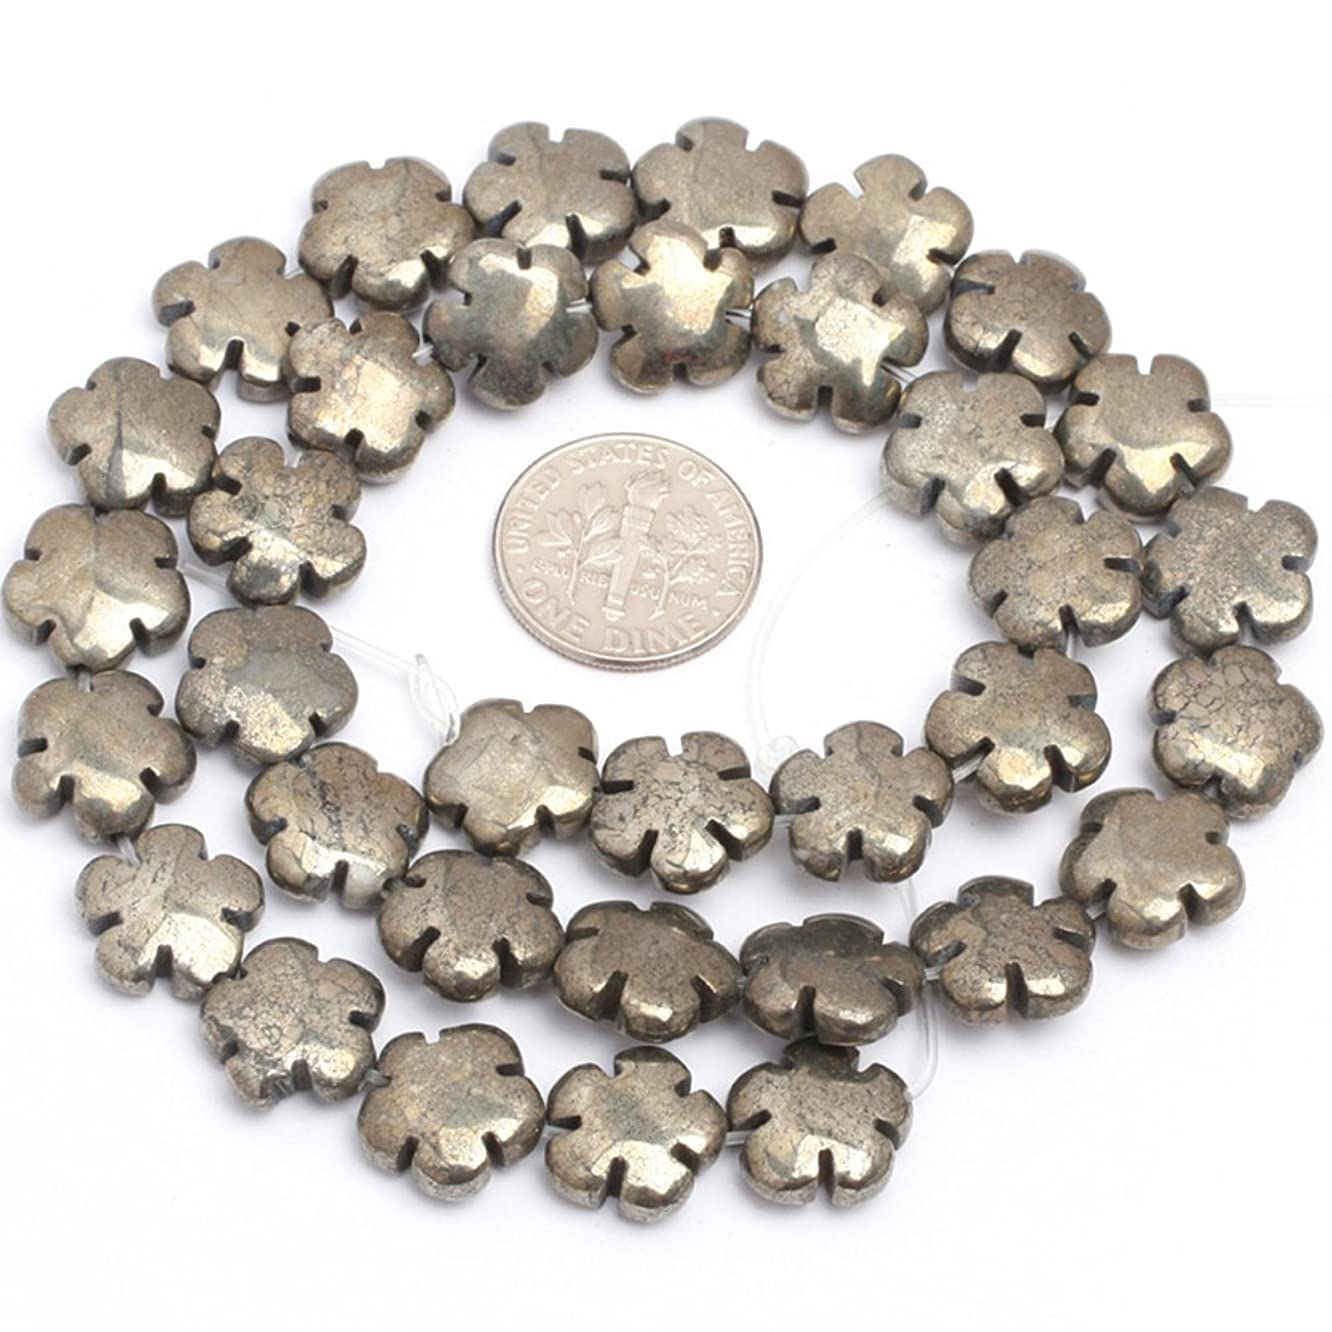 JOE FOREMAN 12mm Pyrite Semi Precious Gemstone Flower Loose Beads for Jewelry Making DIY Handmade Craft Supplies 15